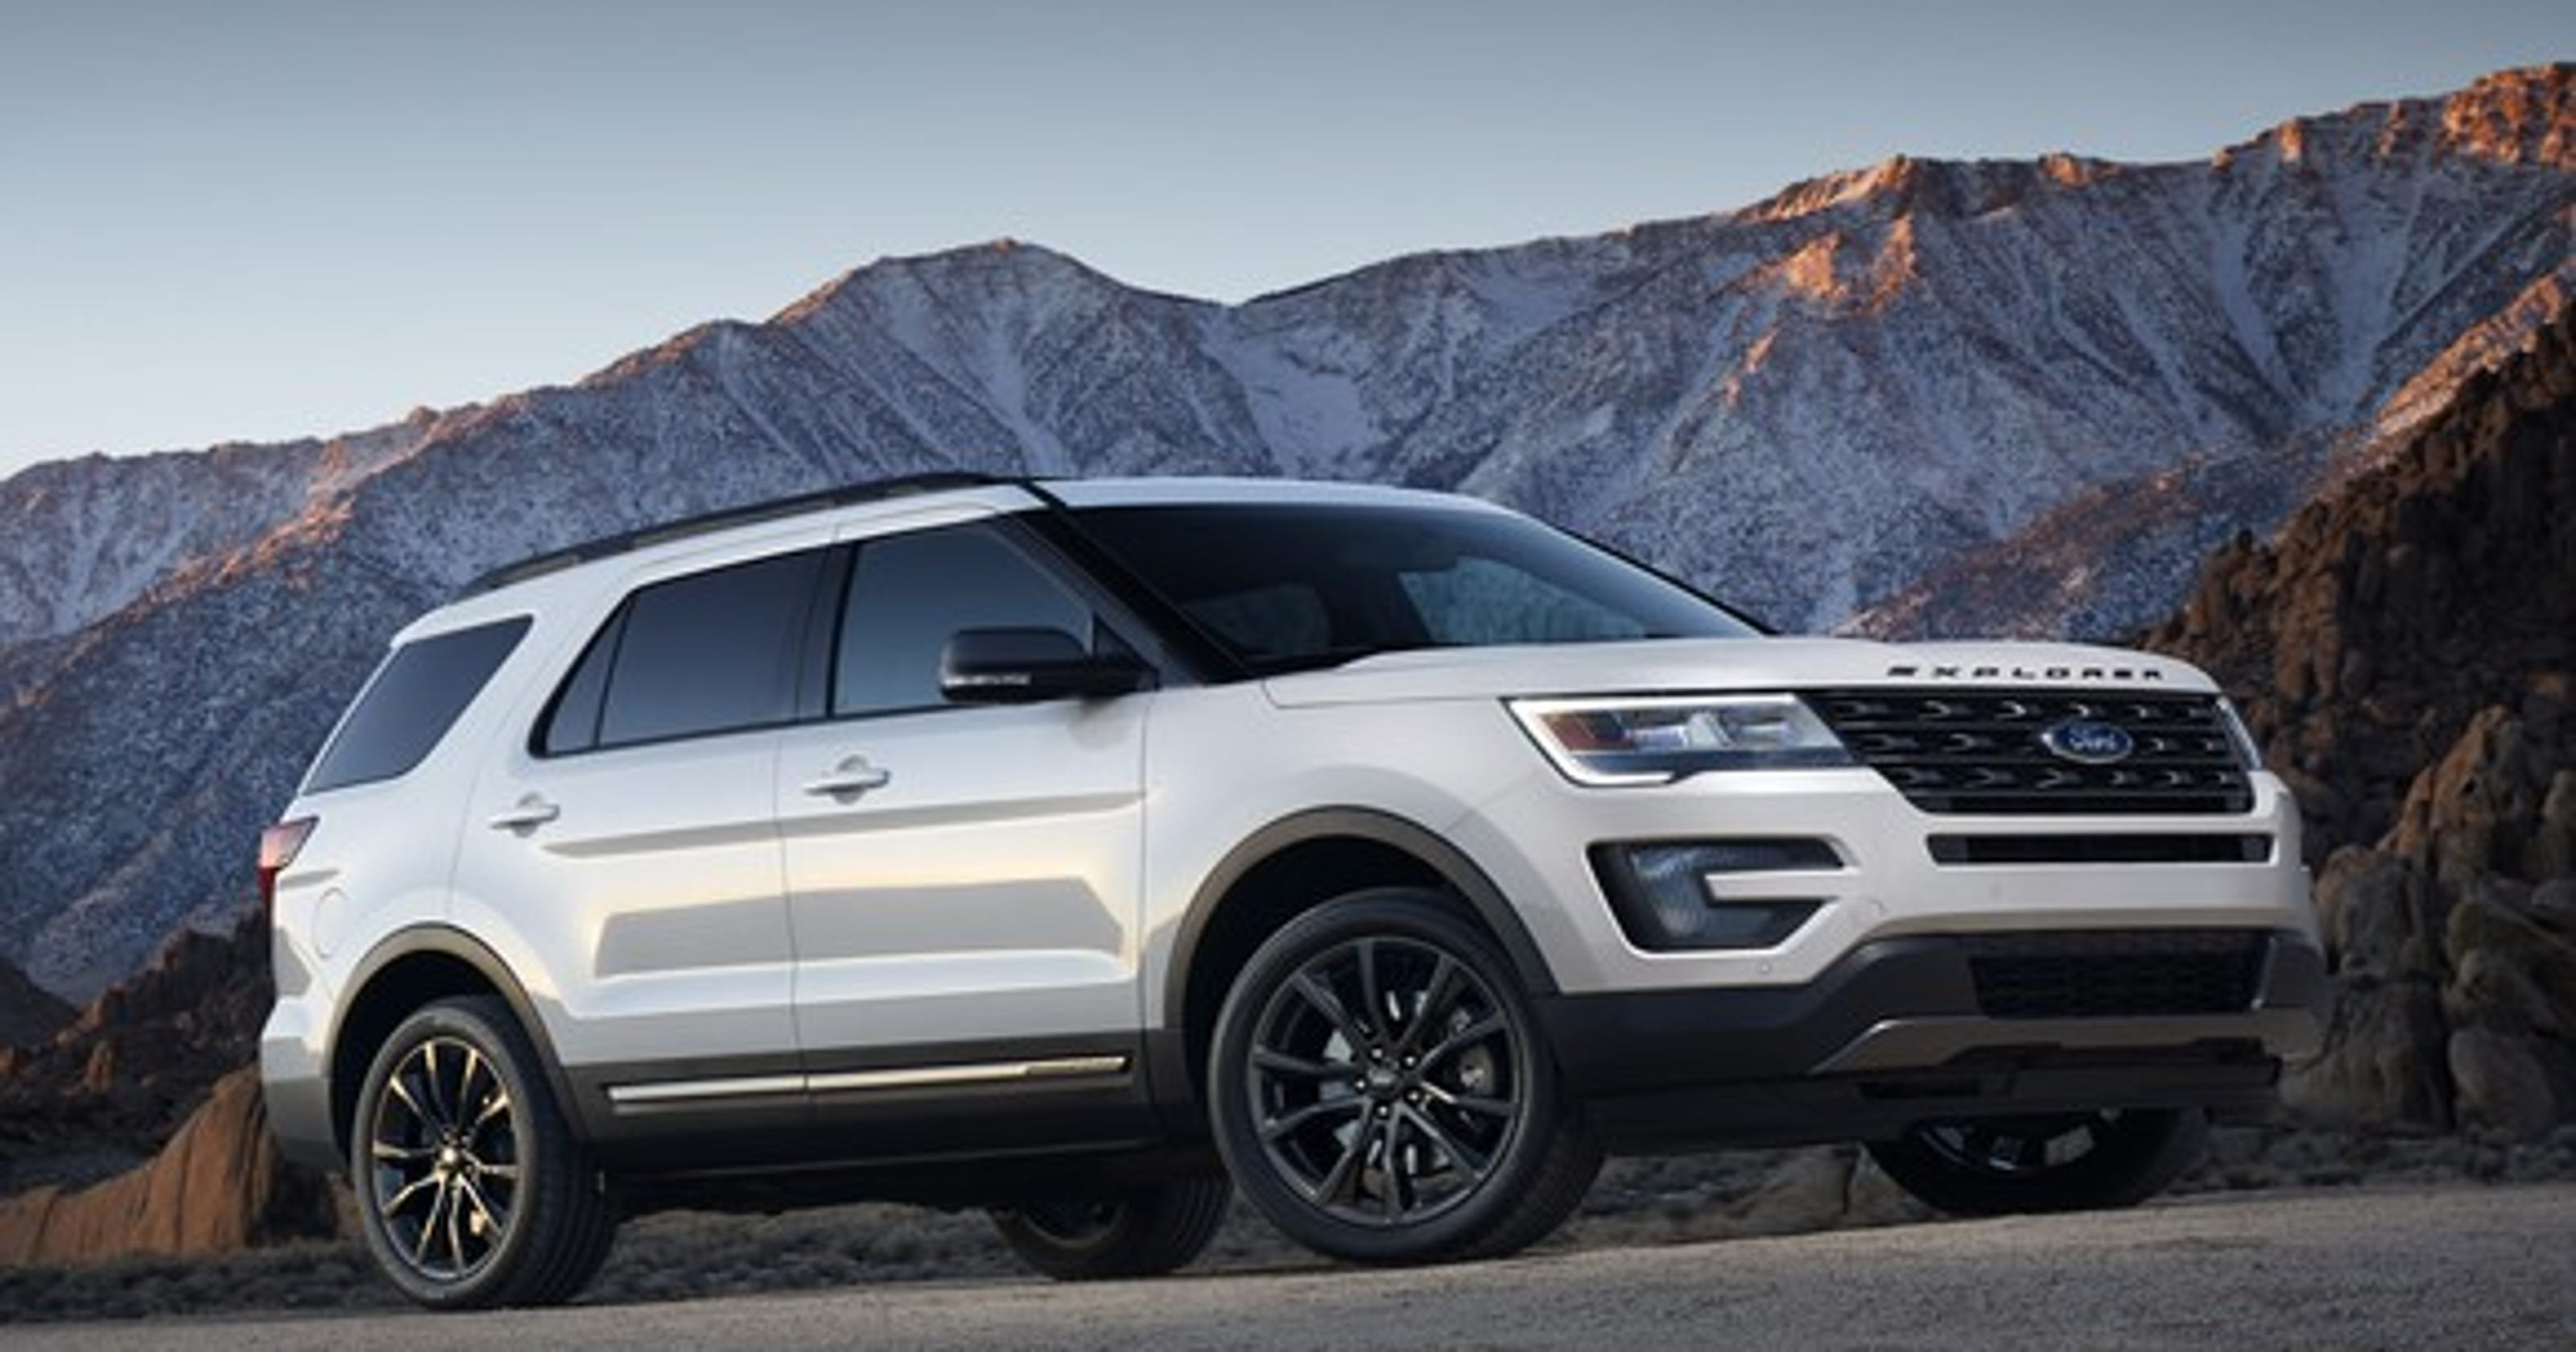 Is the Ford Explorer SUV making people sick?